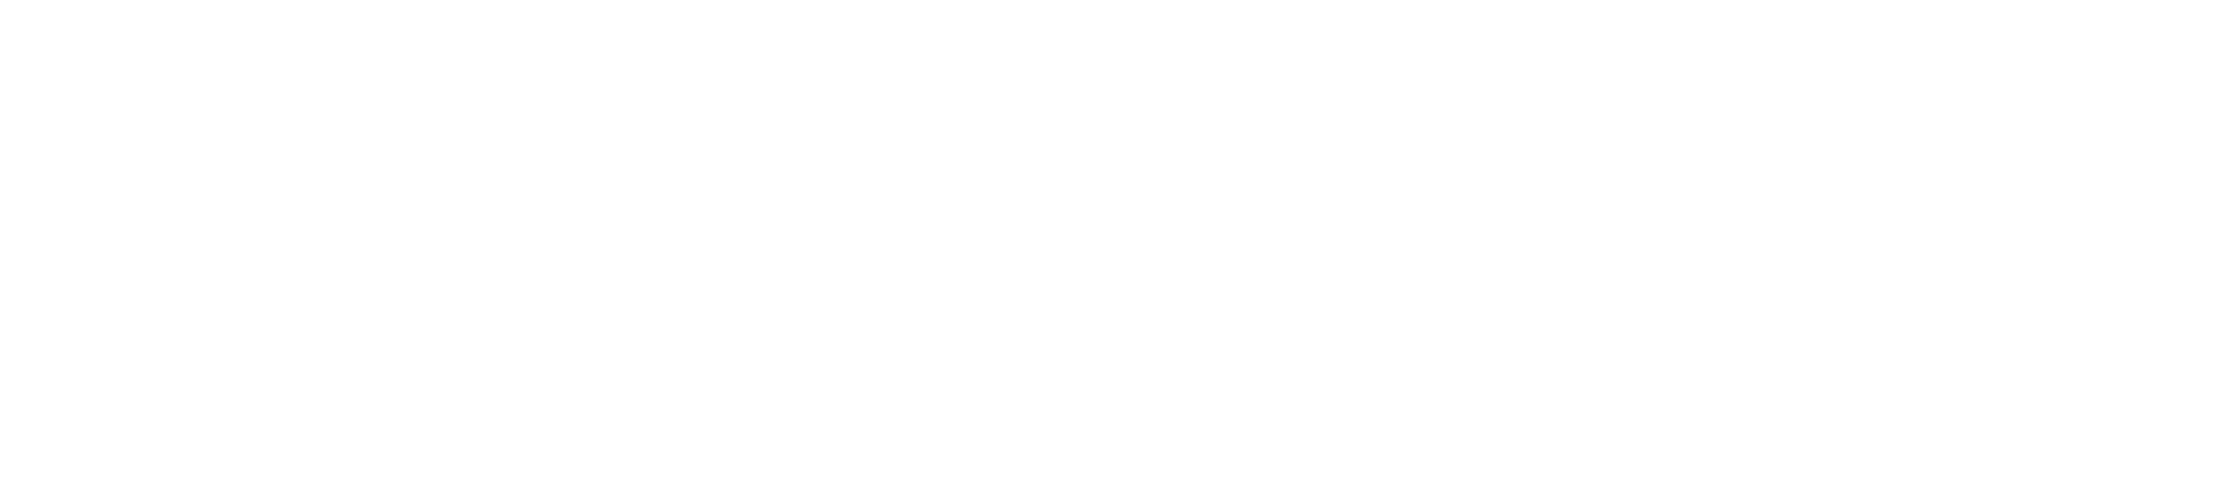 logo The Irving West Hotel